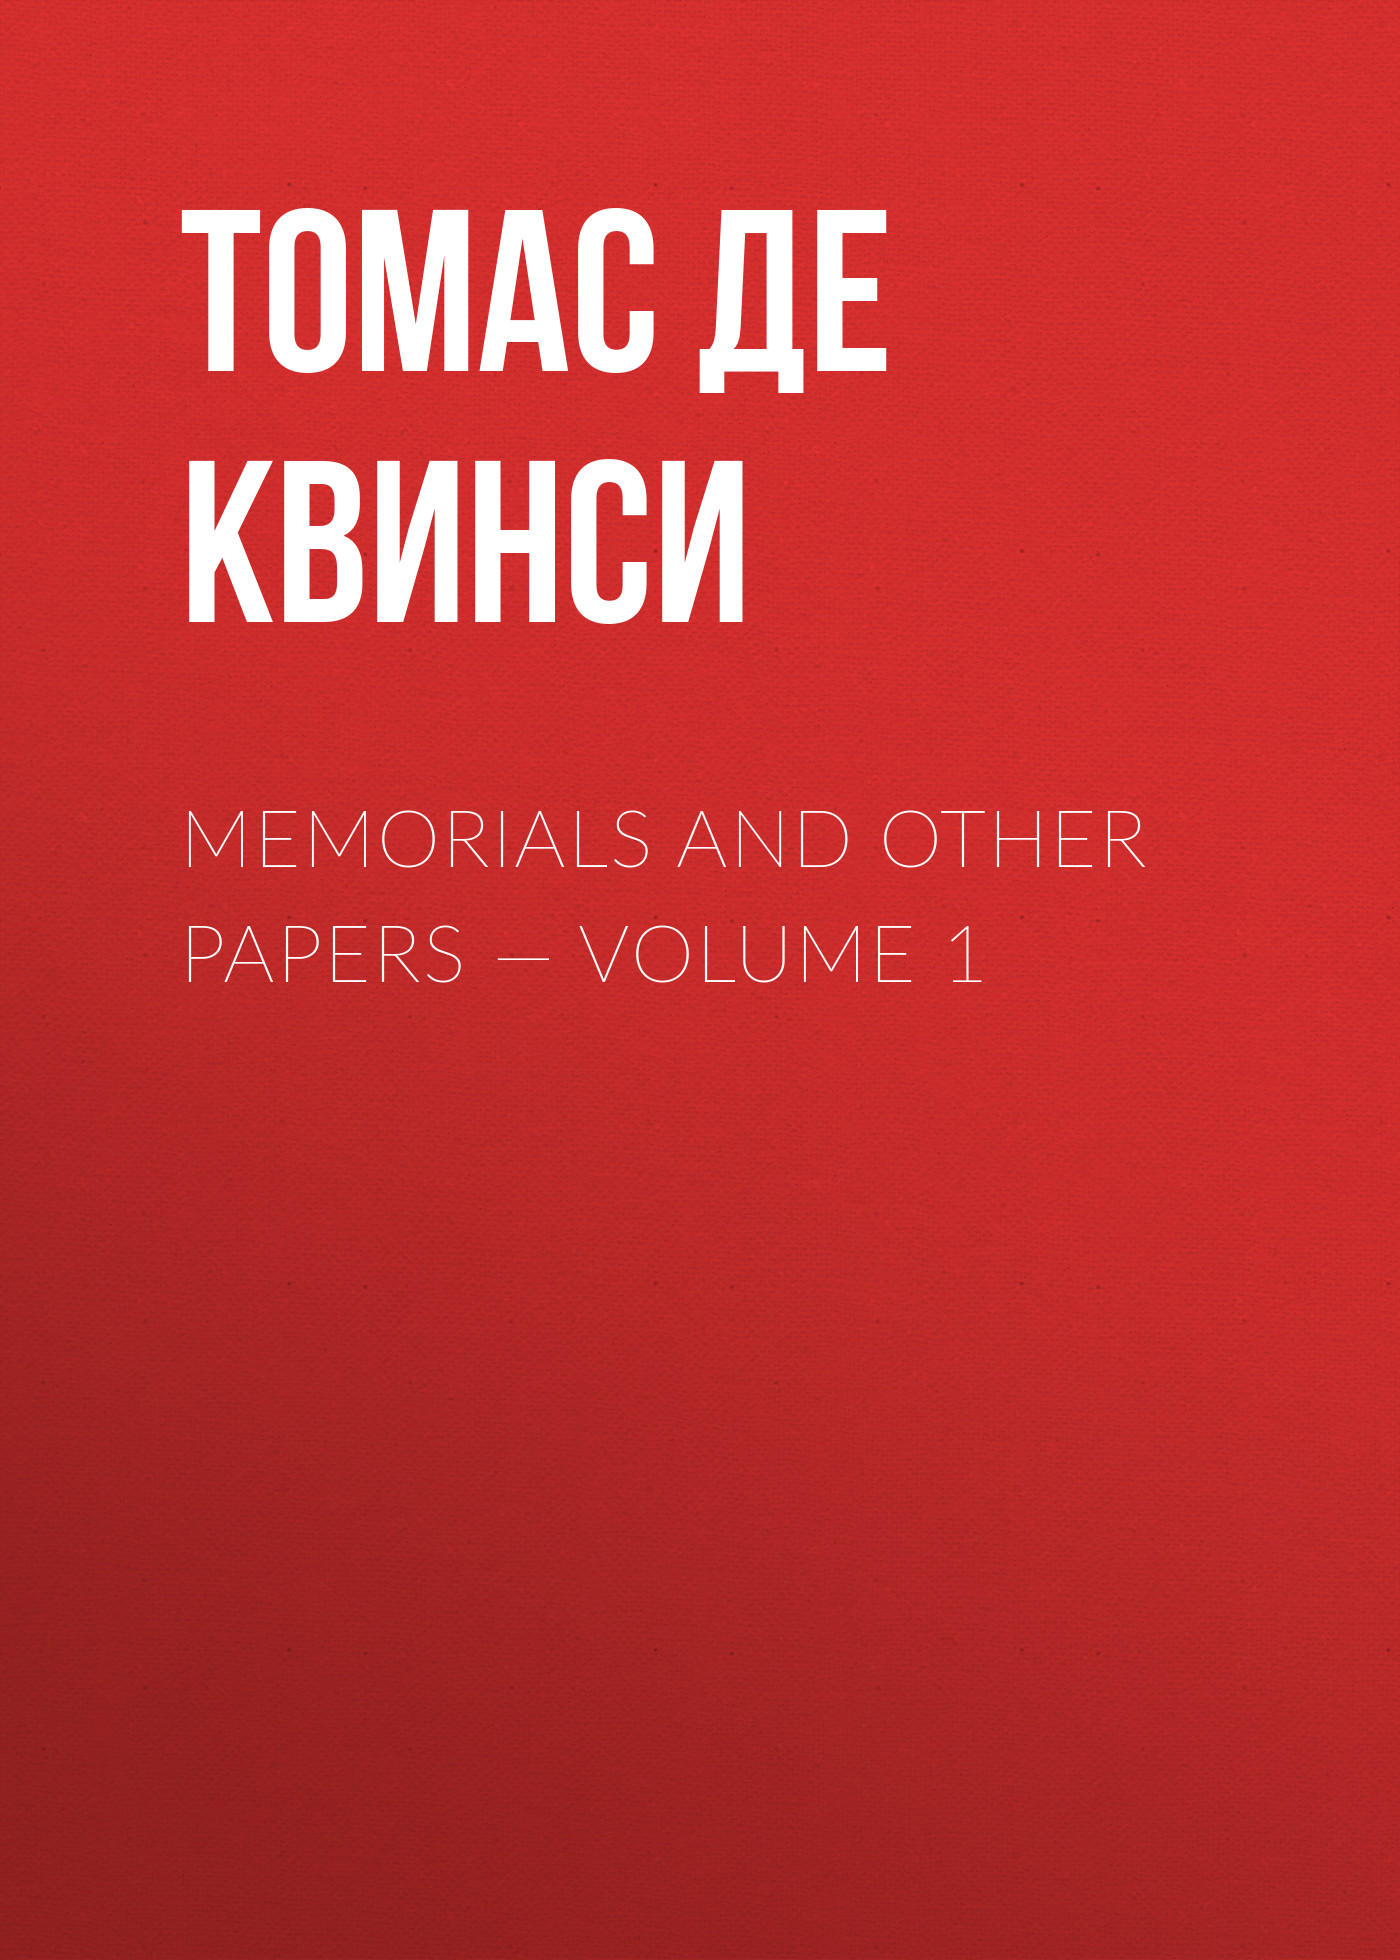 Томас де Квинси Memorials and Other Papers — Volume 1 unbranded 1 other